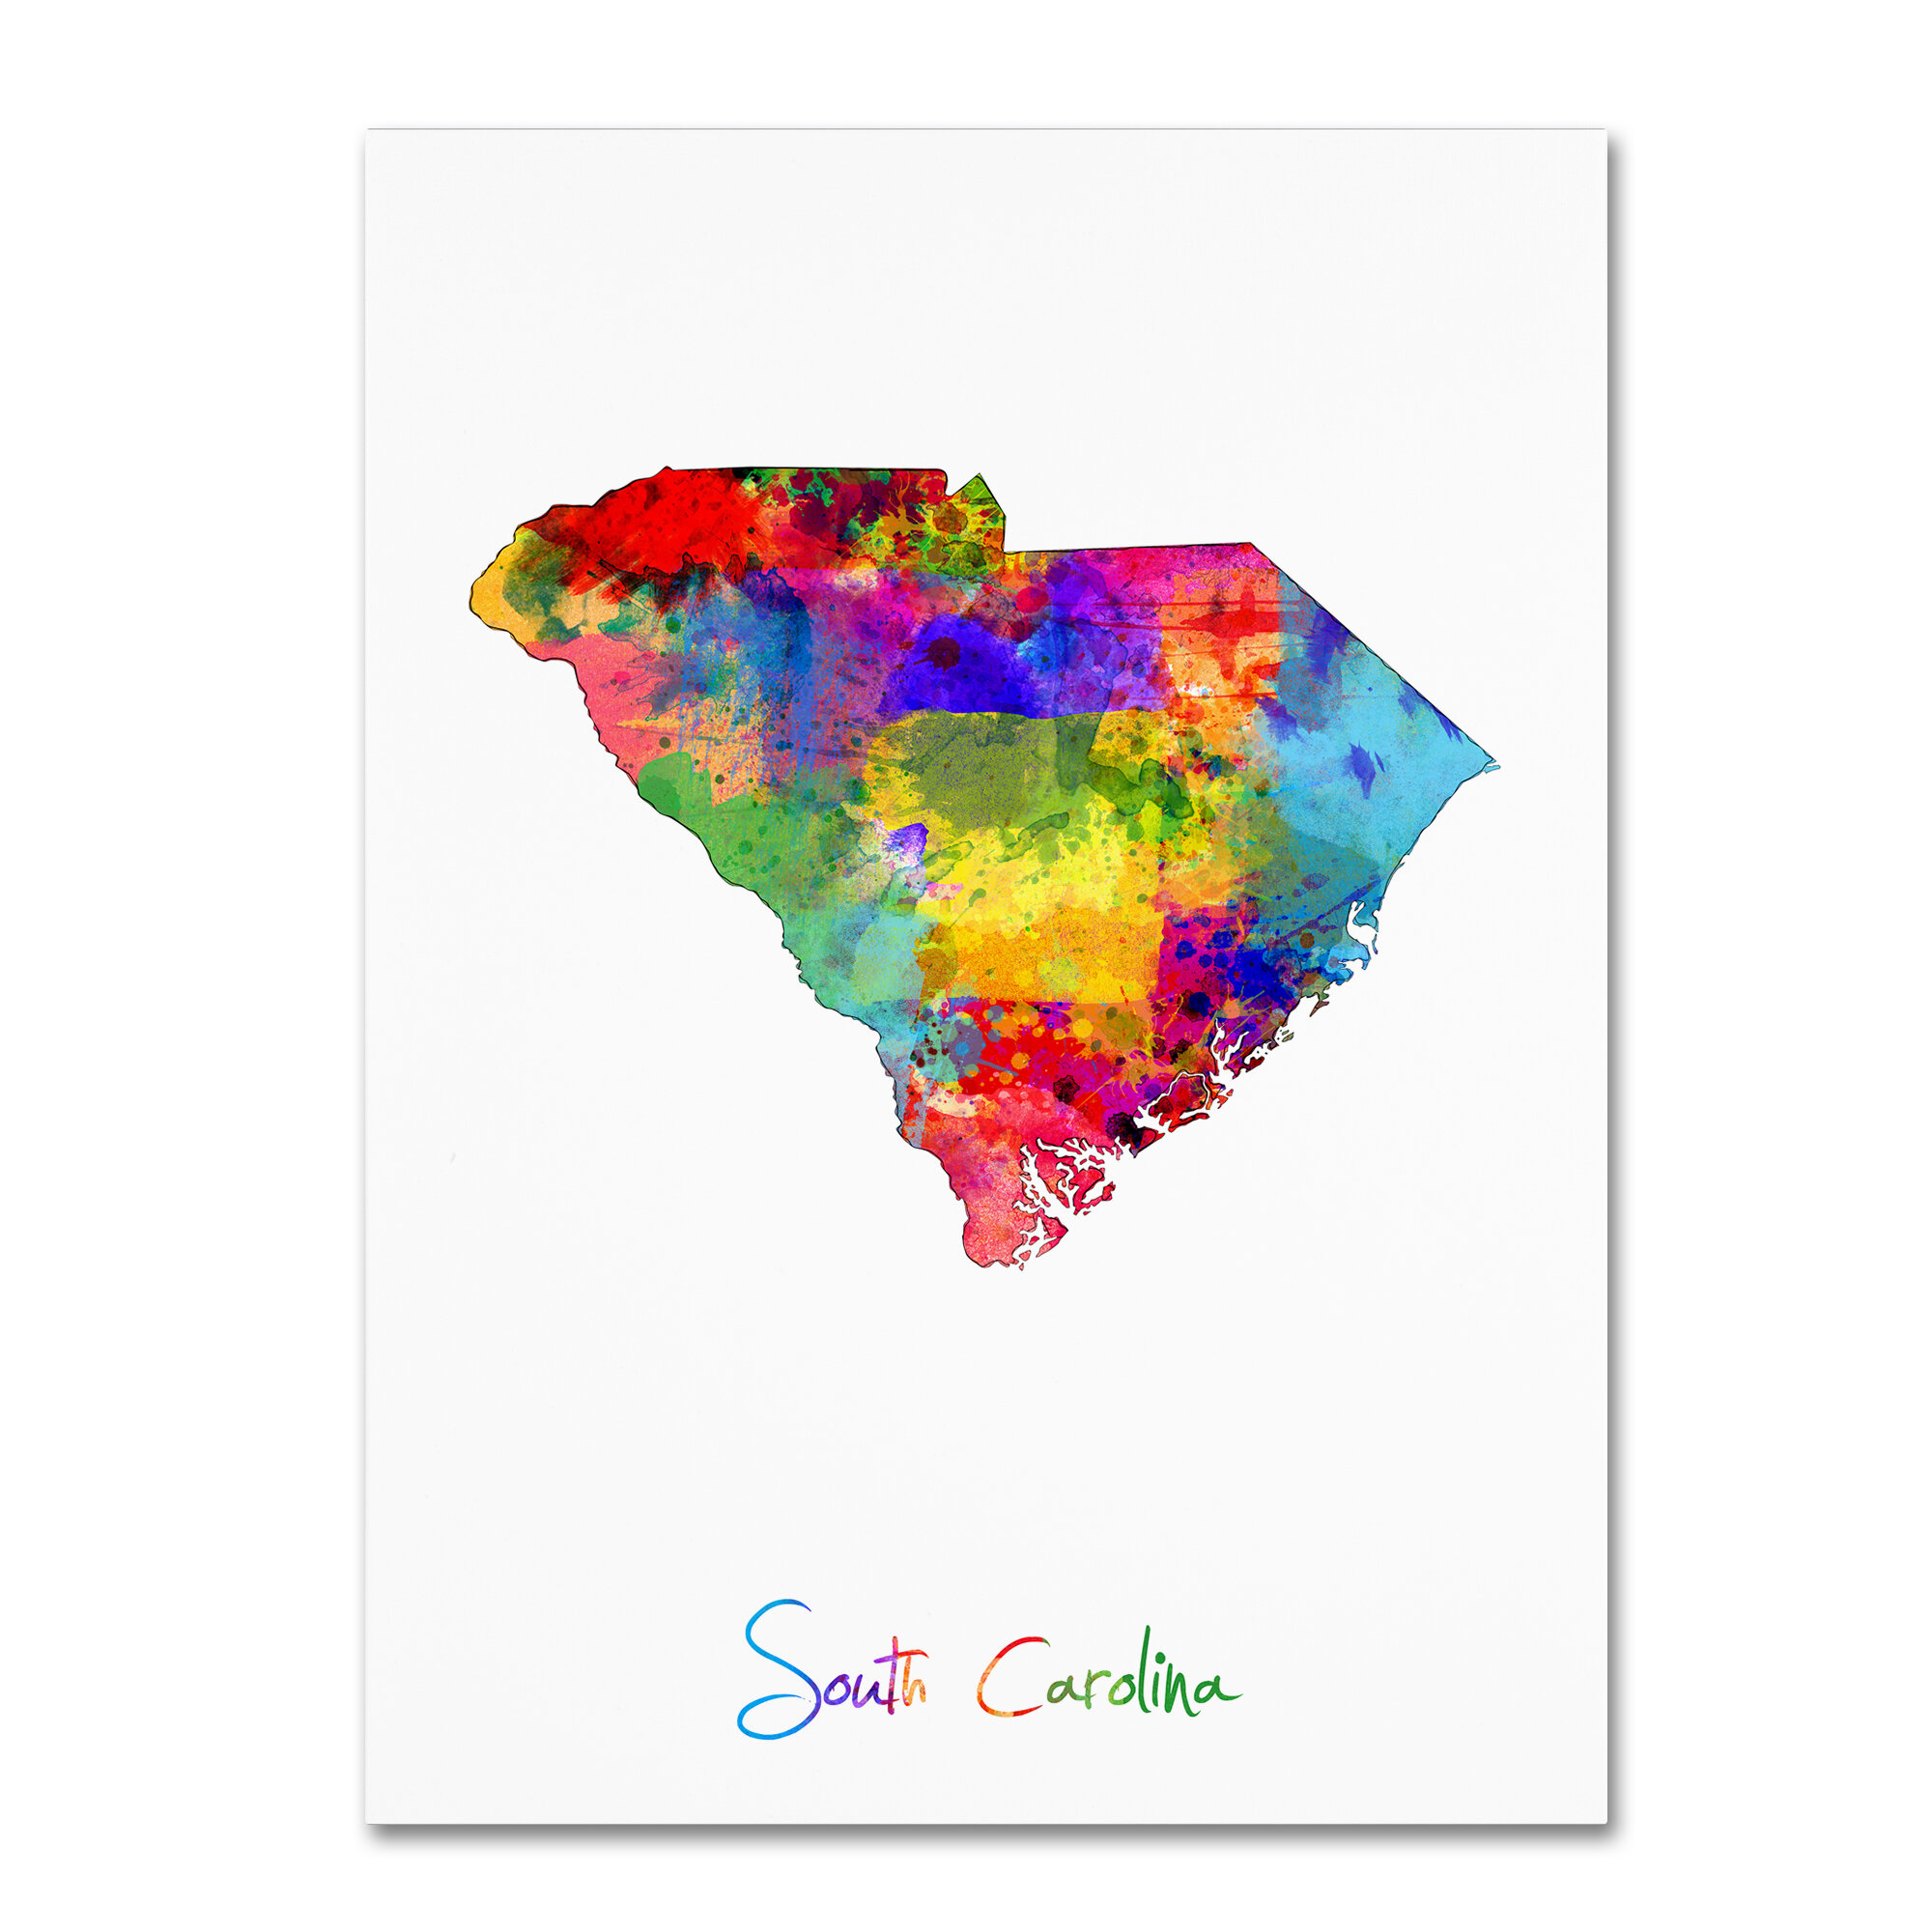 photo regarding Printable Map of South Carolina referred to as South Carolina Map Image Artwork Print upon Wrapped Canvas